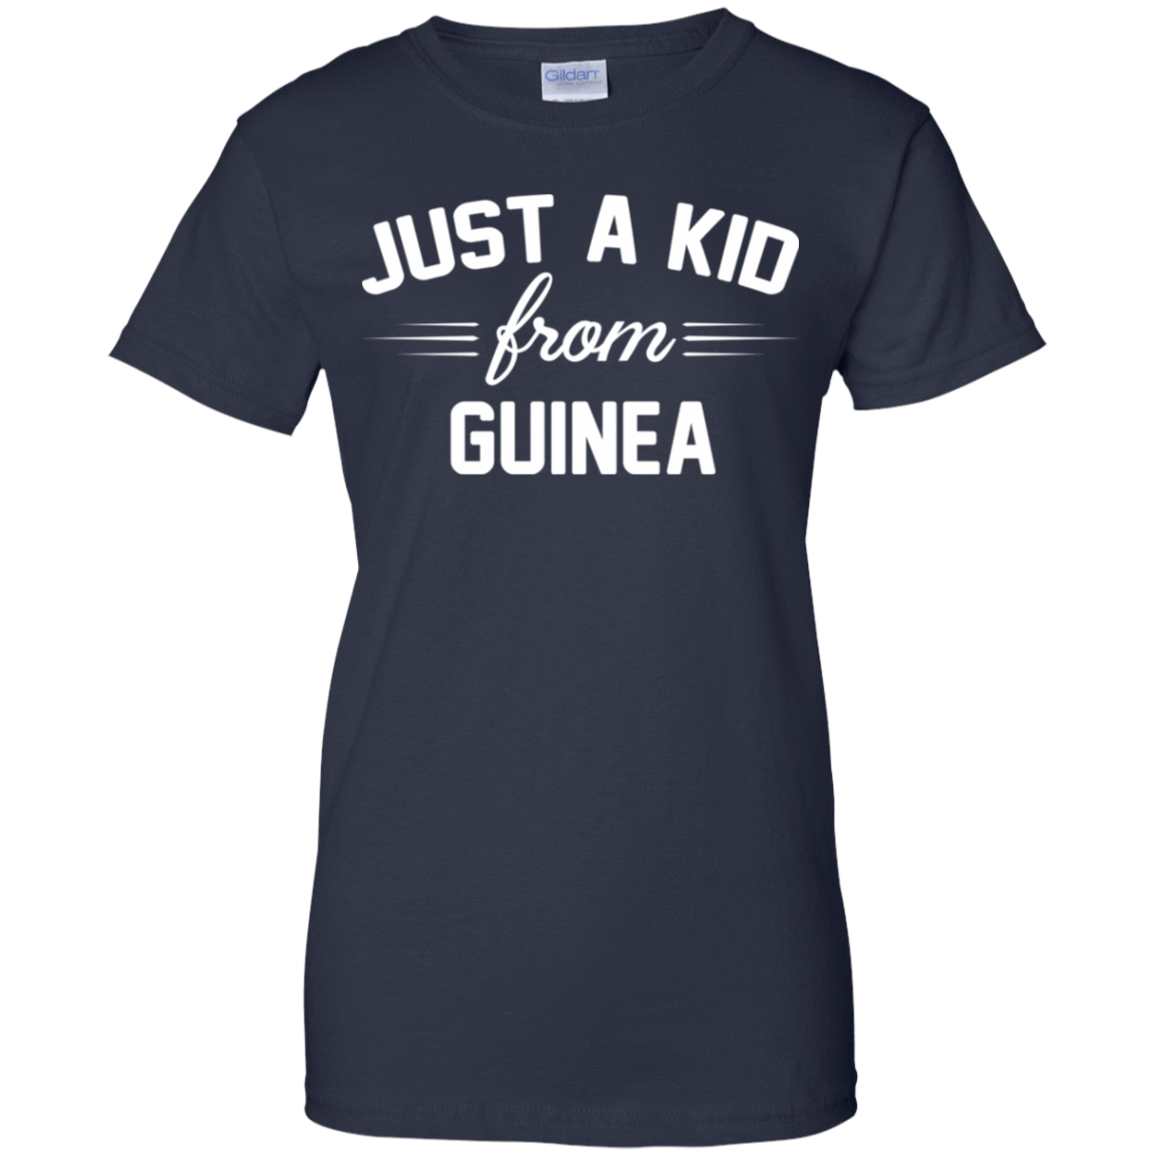 Just a Kid Store | Guinea T-Shirts, Hoodie, Tank 939-9259-72091629-44765 - Tee Ript